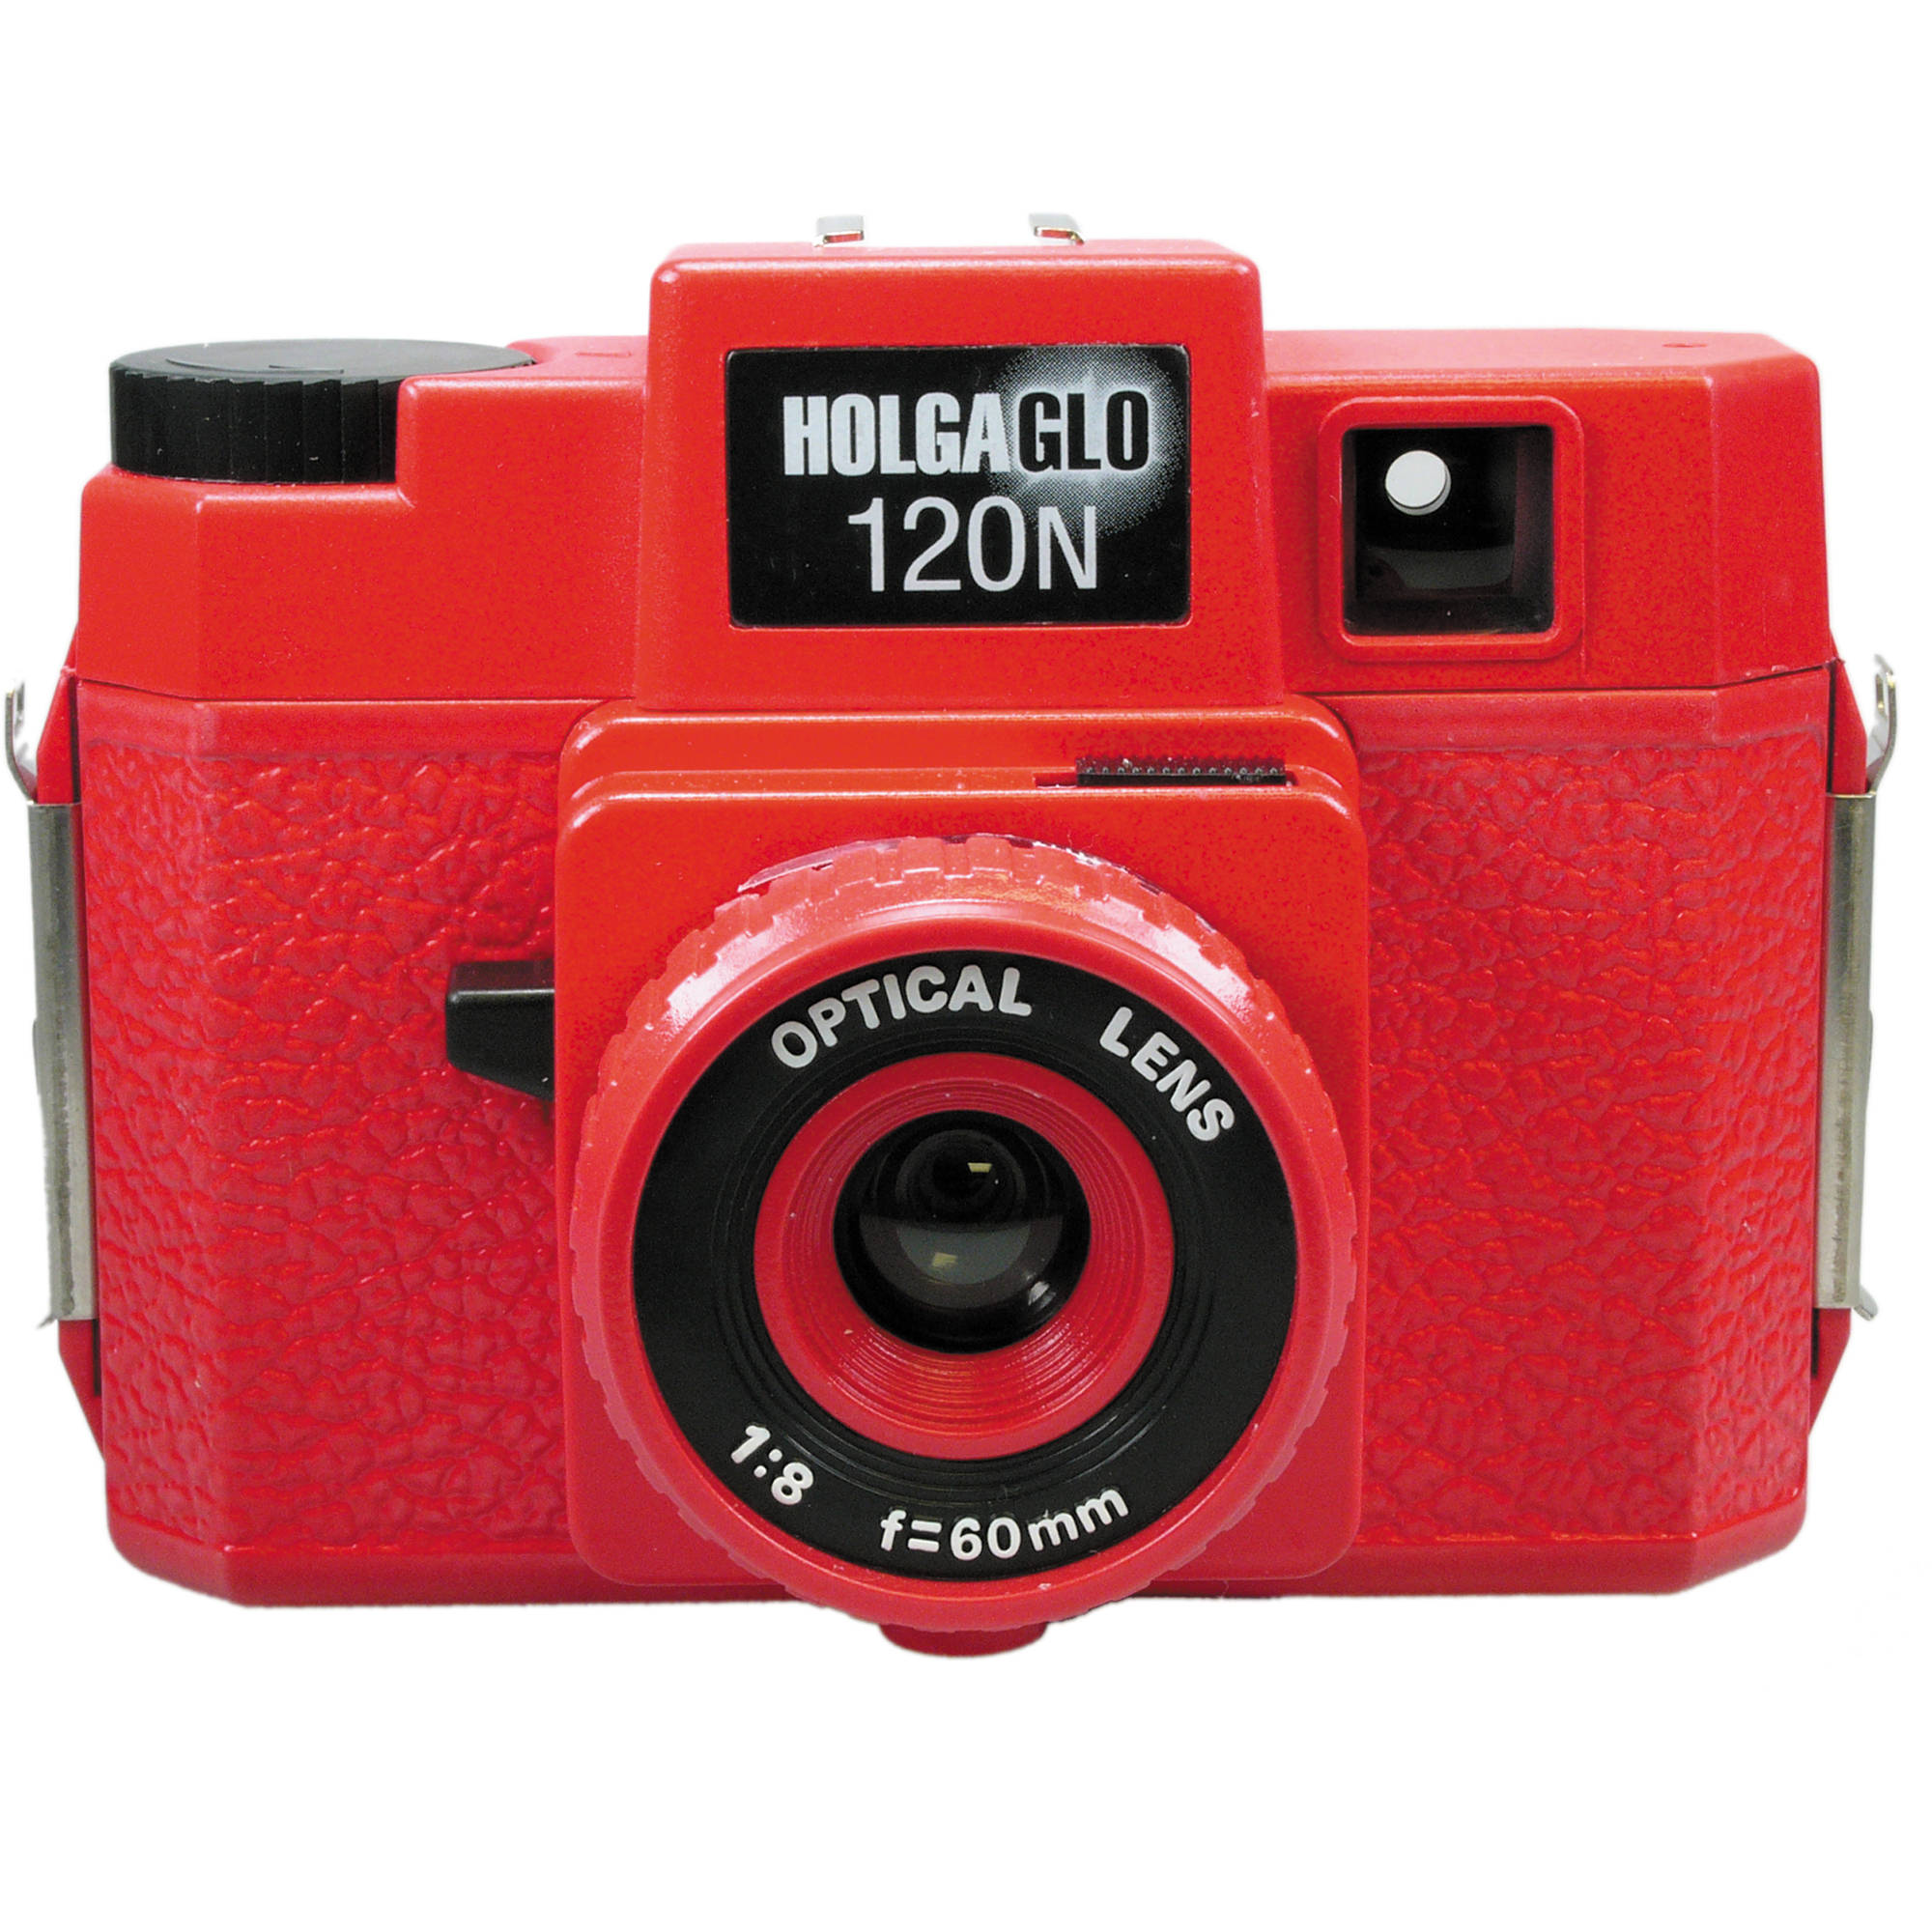 Holga HolgaGlo 120N Glows in the Dark Camera (Infra Red) 310120